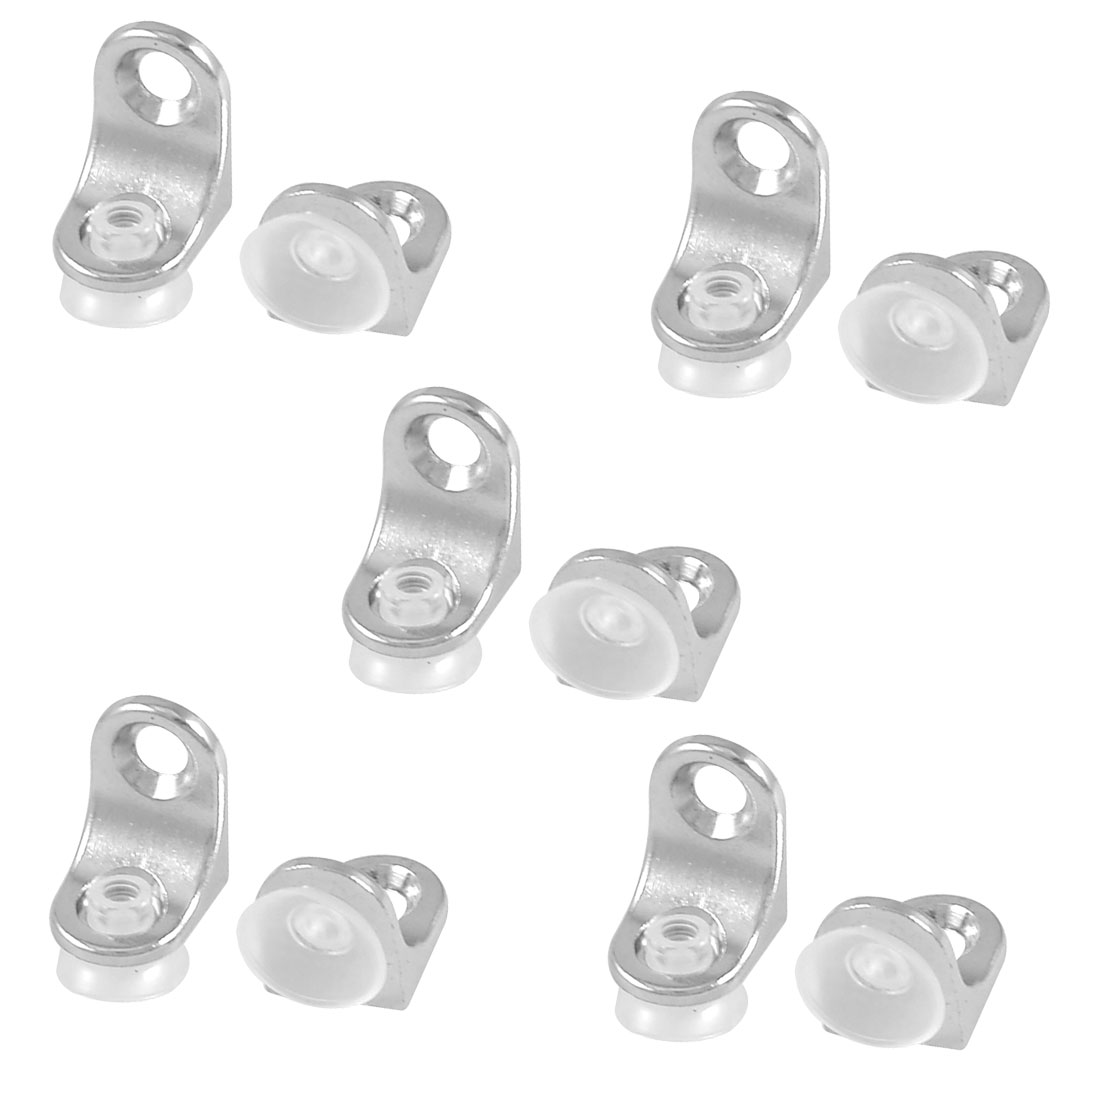 10 Pcs Glass Shelf Mounting Silver Tone Metal Support Holder Bracket